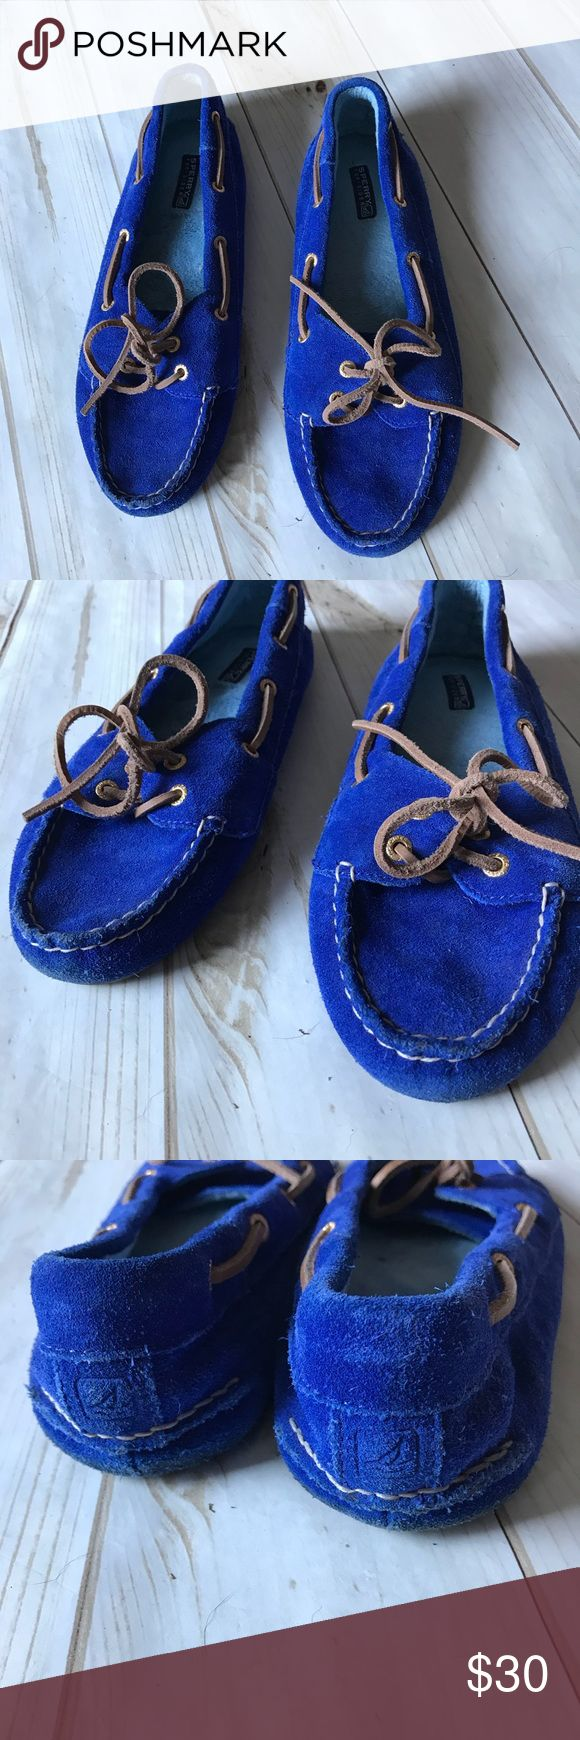 Sperry Slippers Super cute and comfortable blue suede slipper with hard bottoms. Soft on the inside and super clean Sperry Top-Sider Shoes Slippers